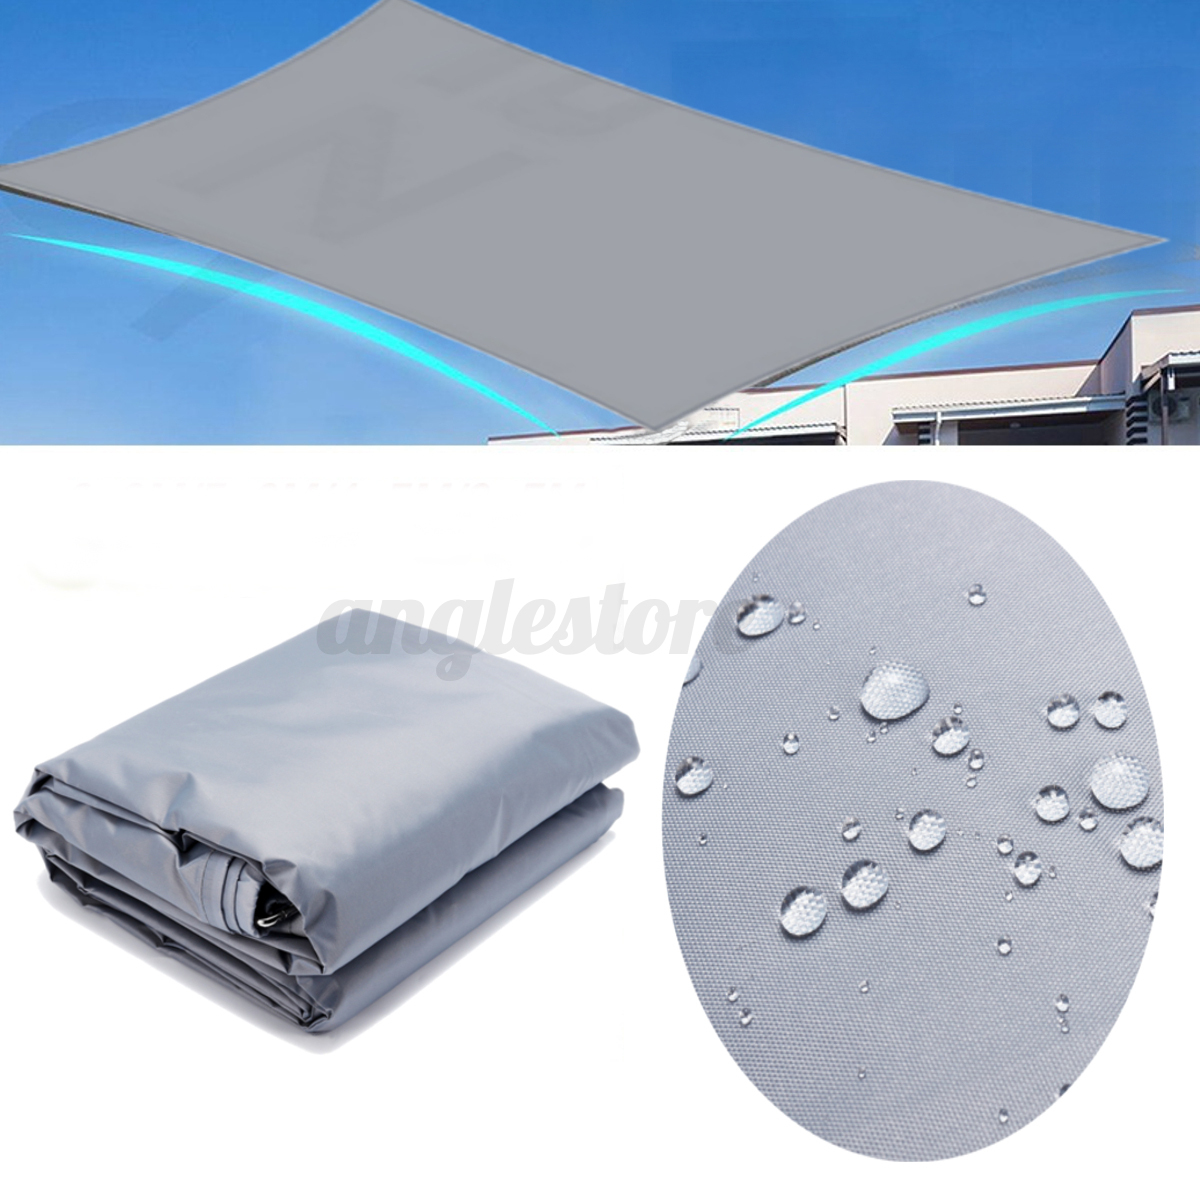 Waterproof-Sun-Shade-Sail-UV-Patio-Outdoor-Top-Canopy-Rectangle-Triangle-Cover miniature 9